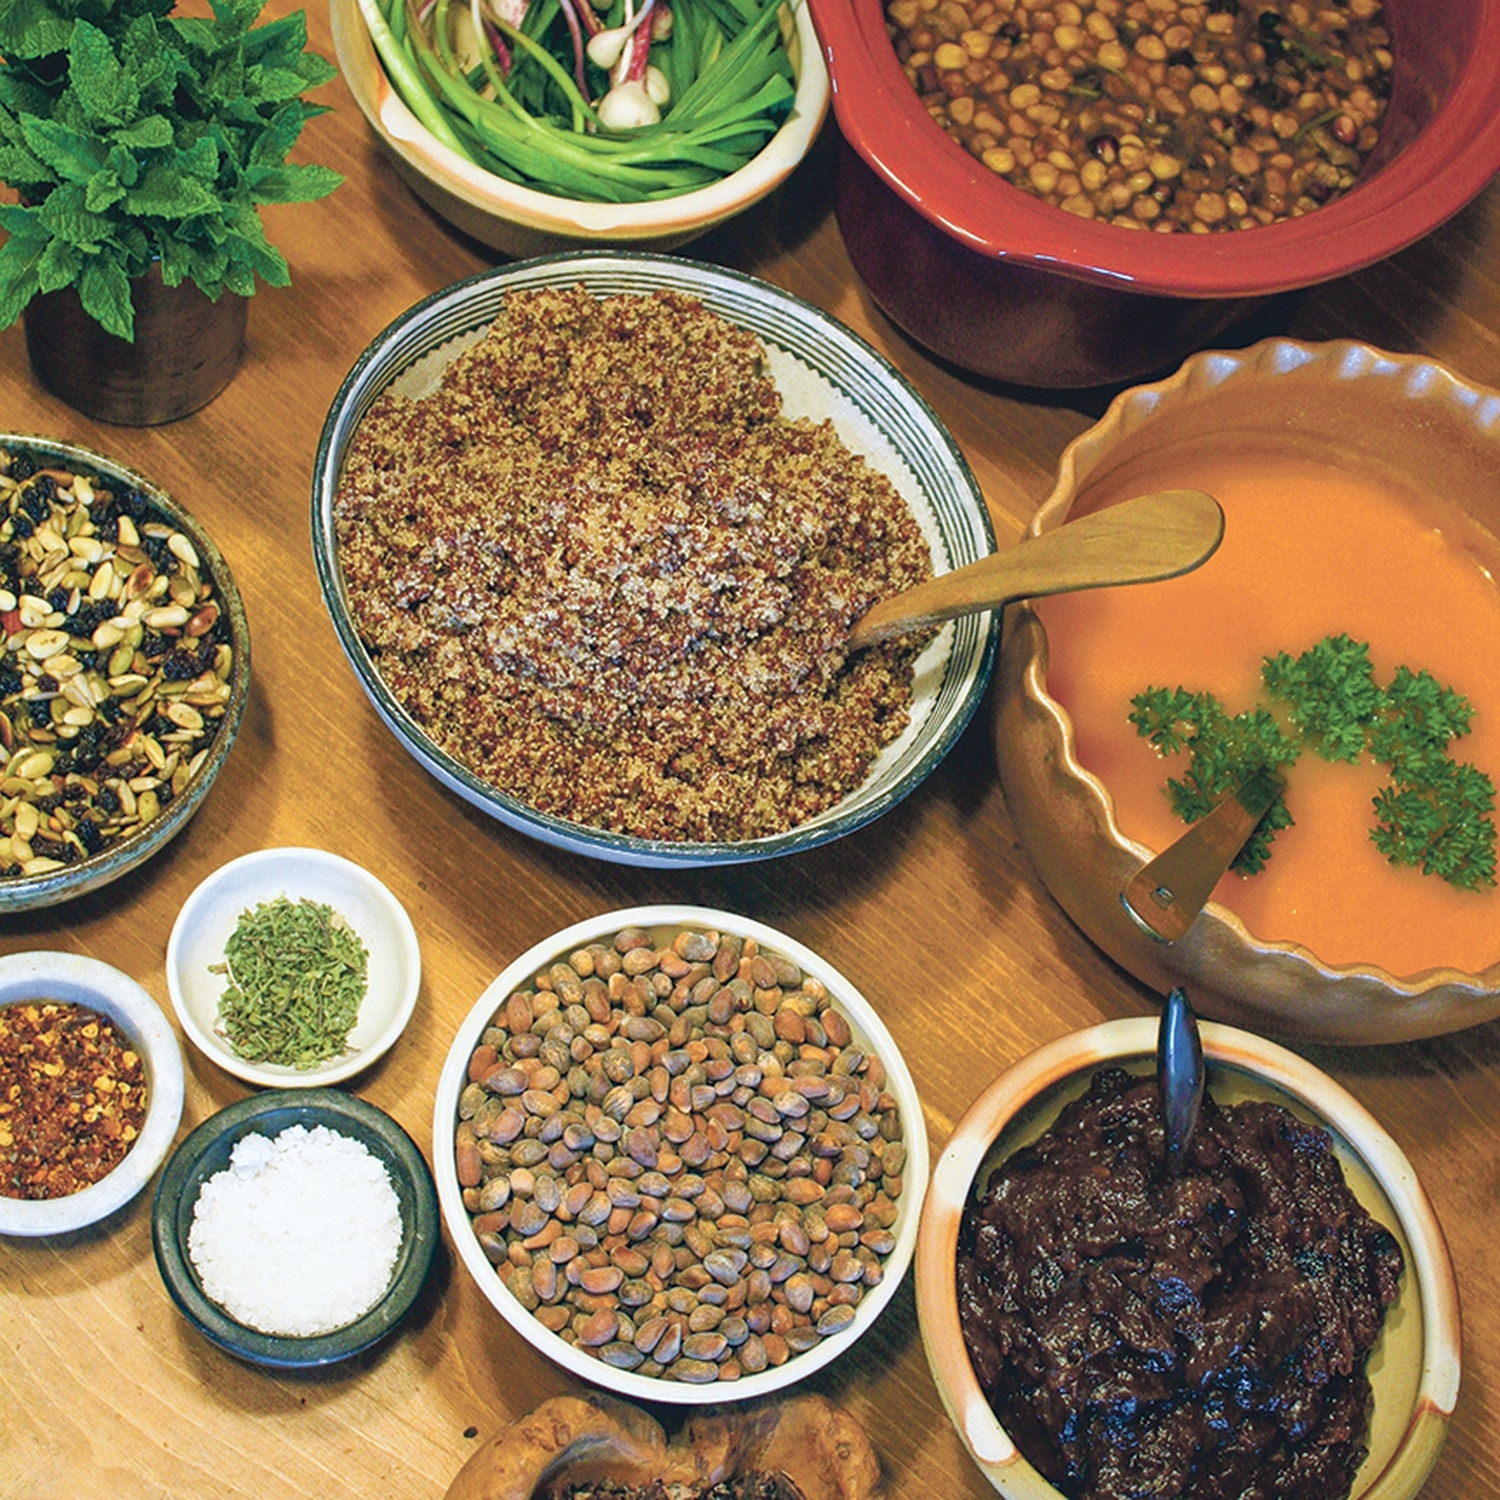 Seeds, nuts and grains were the basis of the ancestral diet.